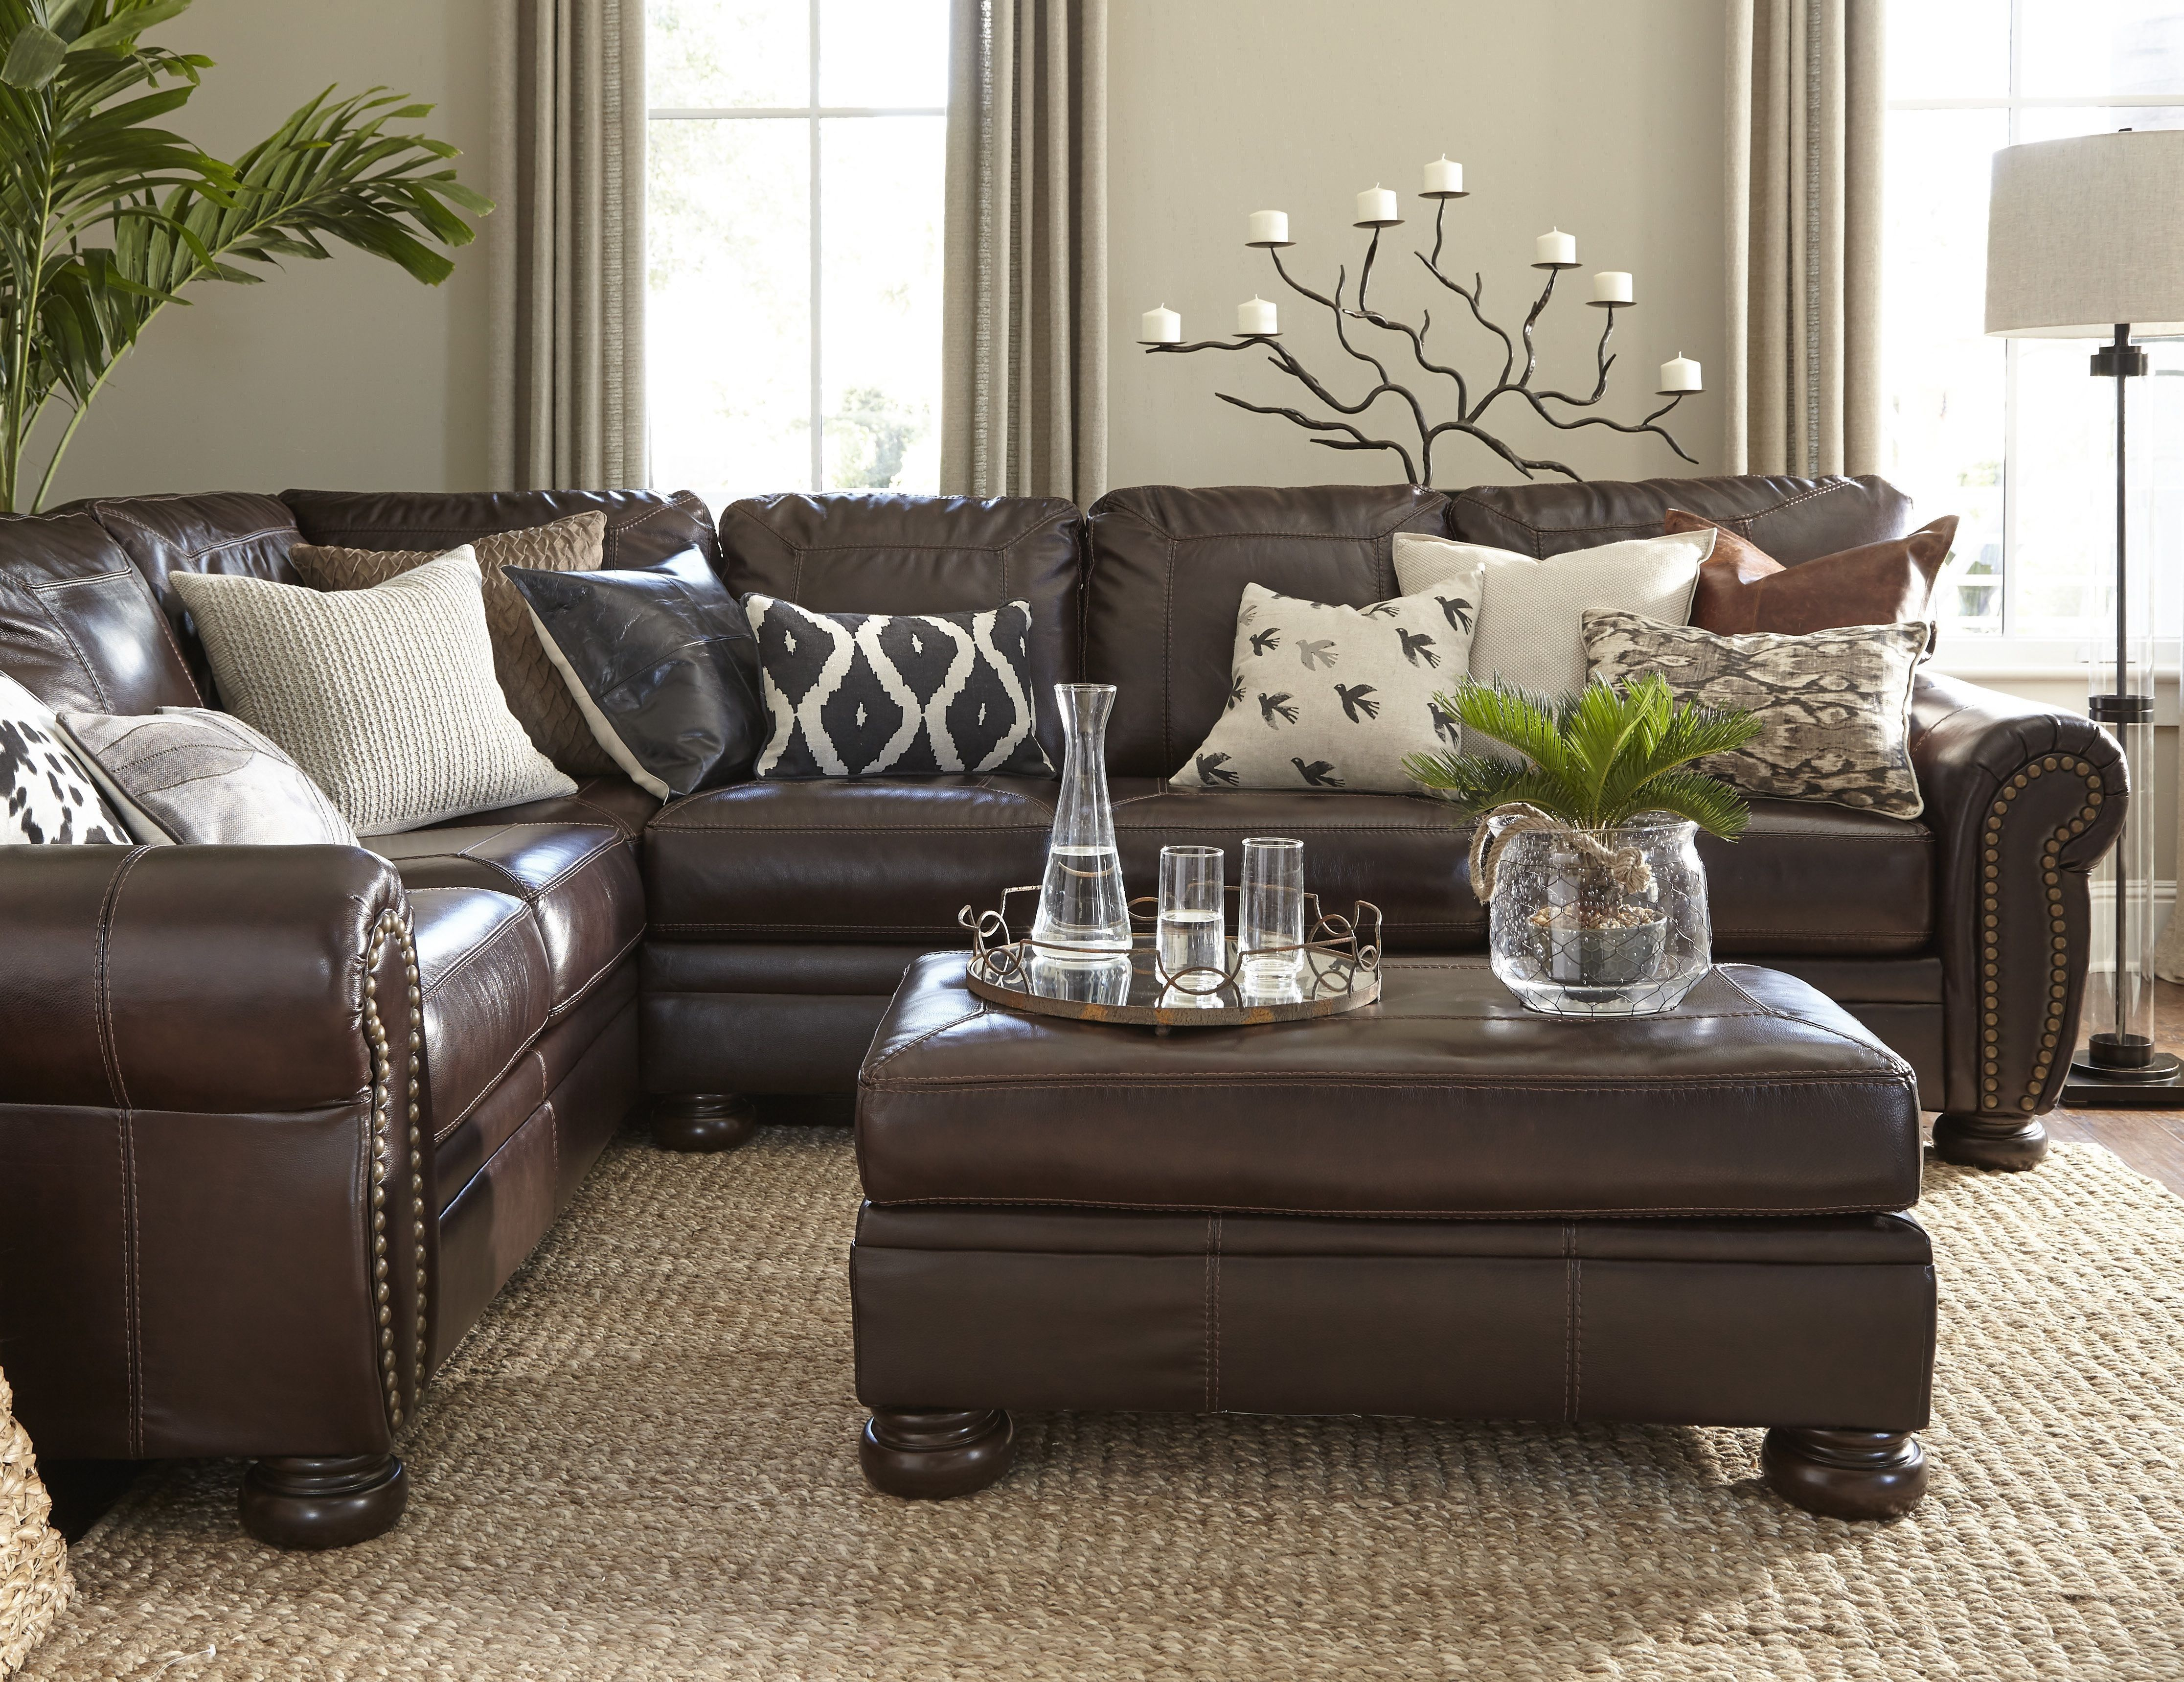 55 Stunning Brown Leather Living Room Furniture Ideas Brown Leather Living Room Furniture Brown Leather Couch